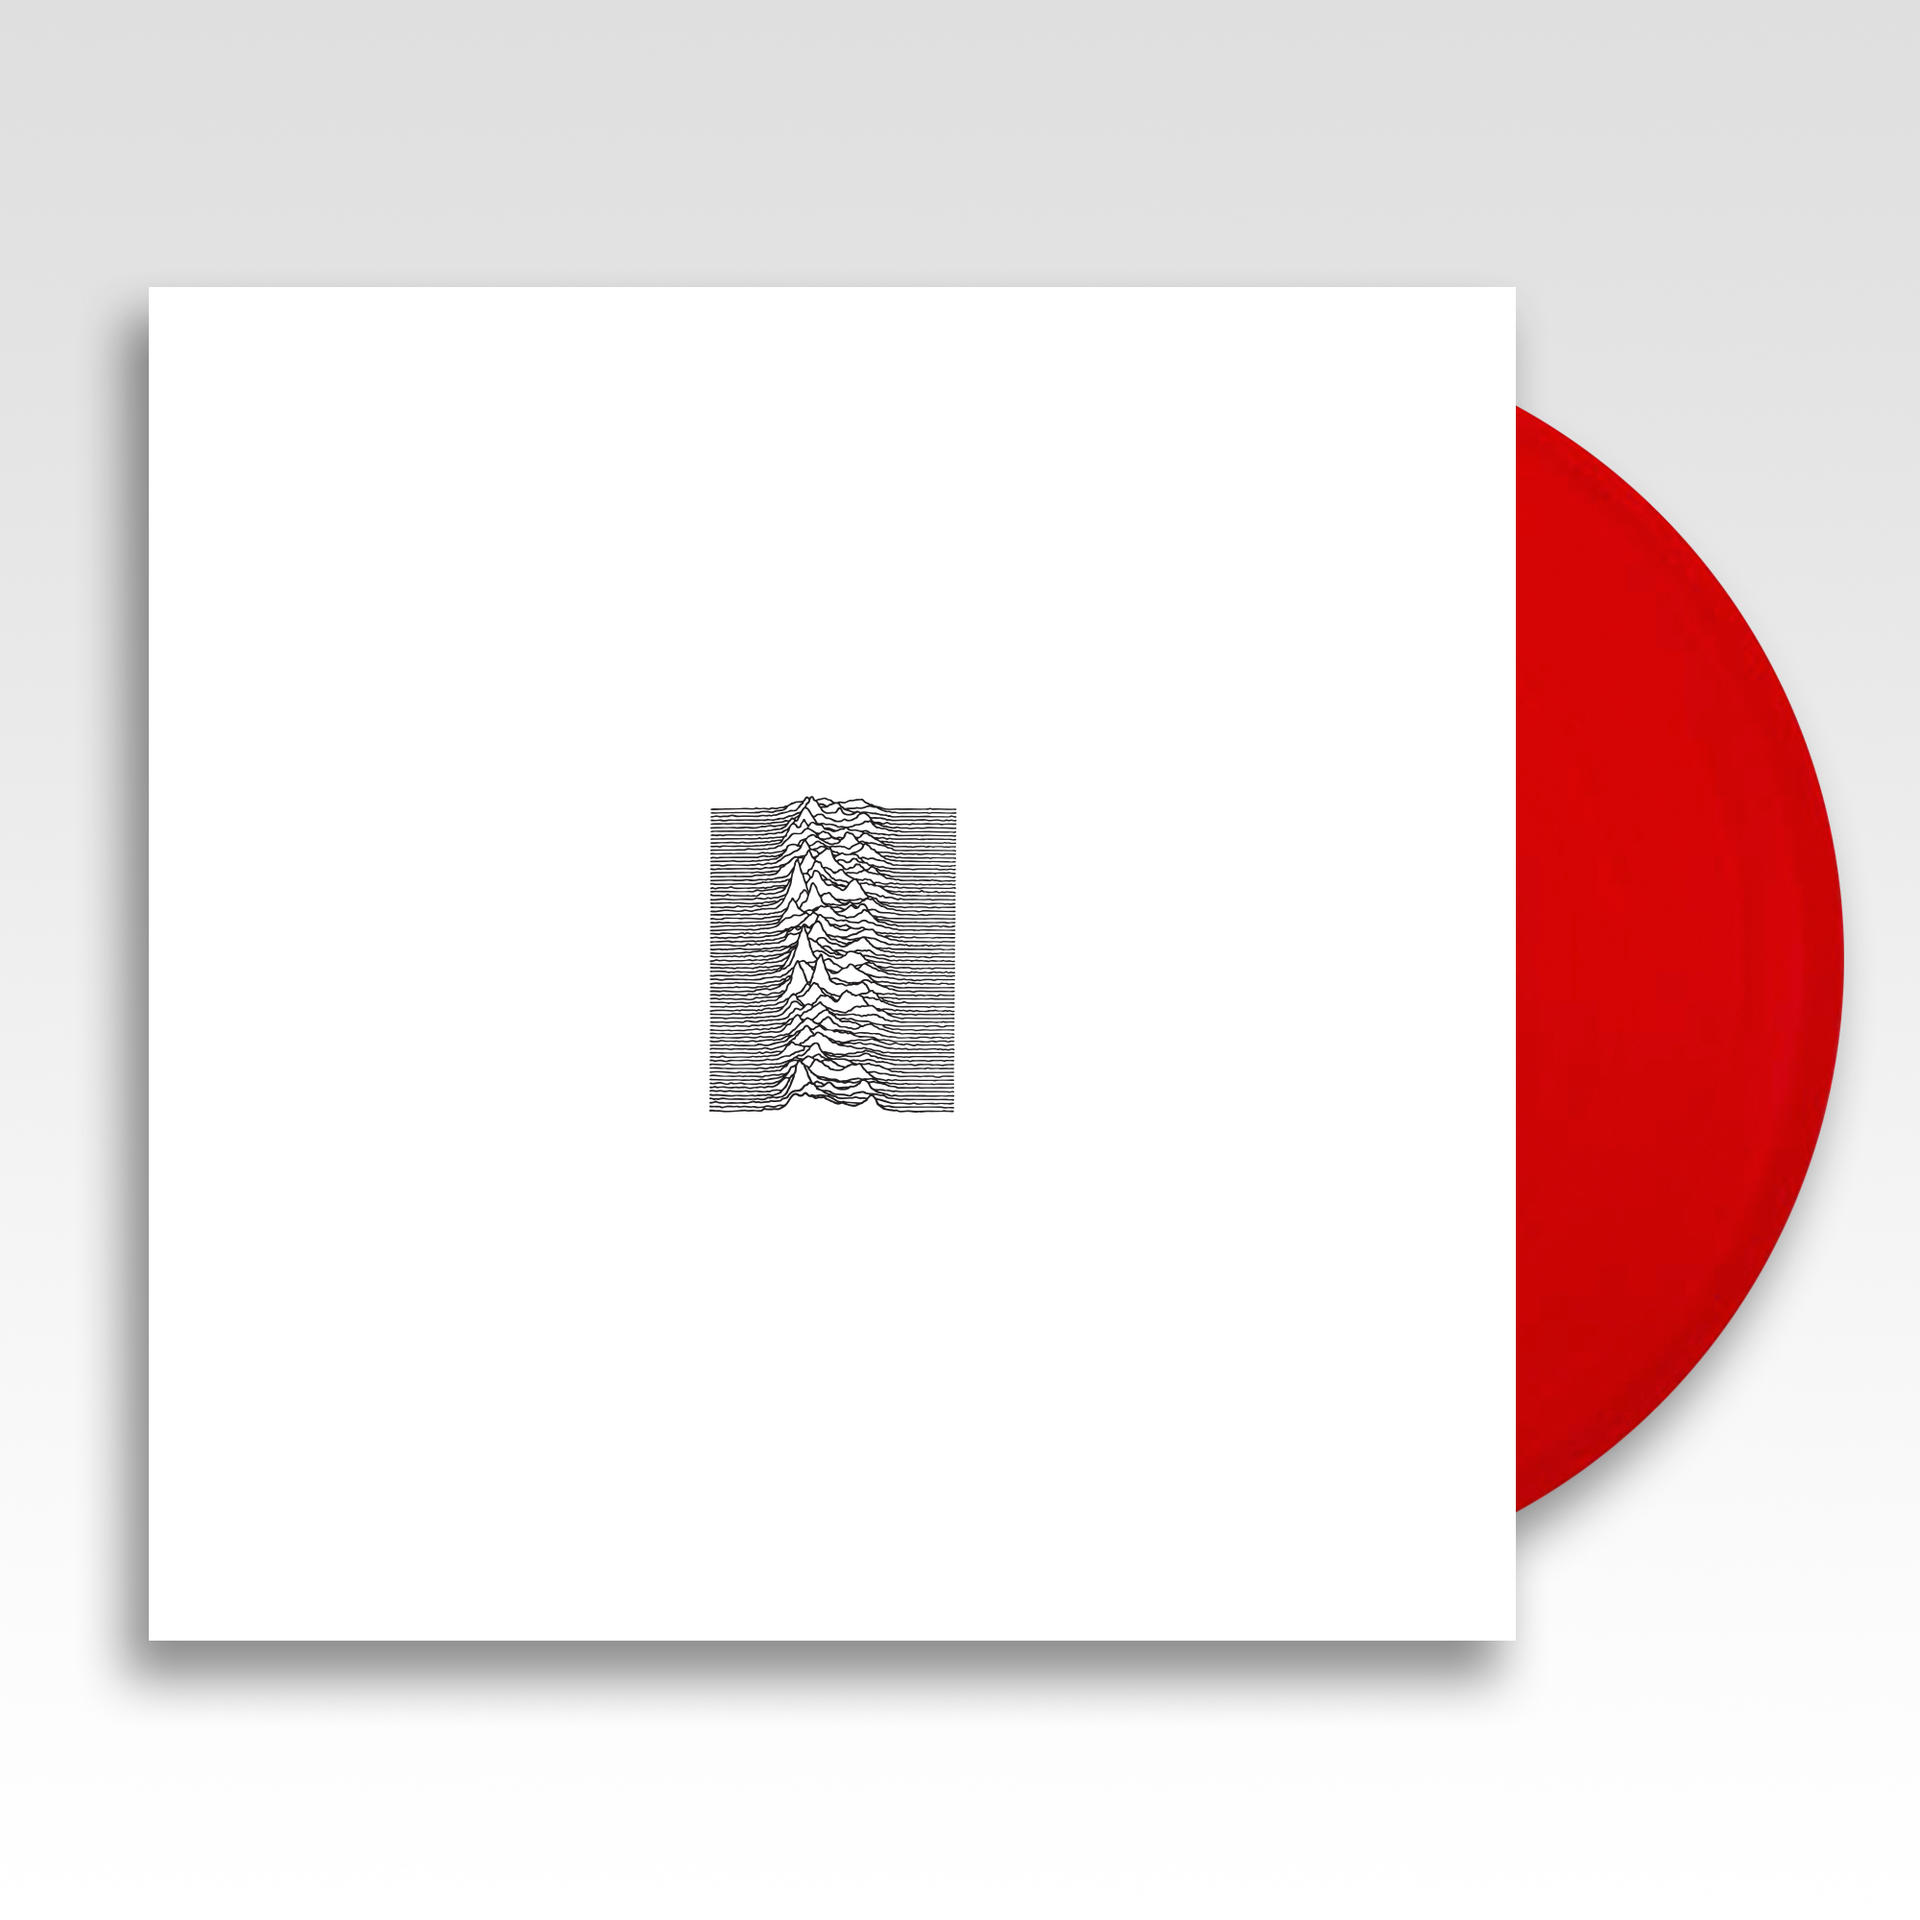 UNKNOWN PLEASURES (LP LIMITED RED)